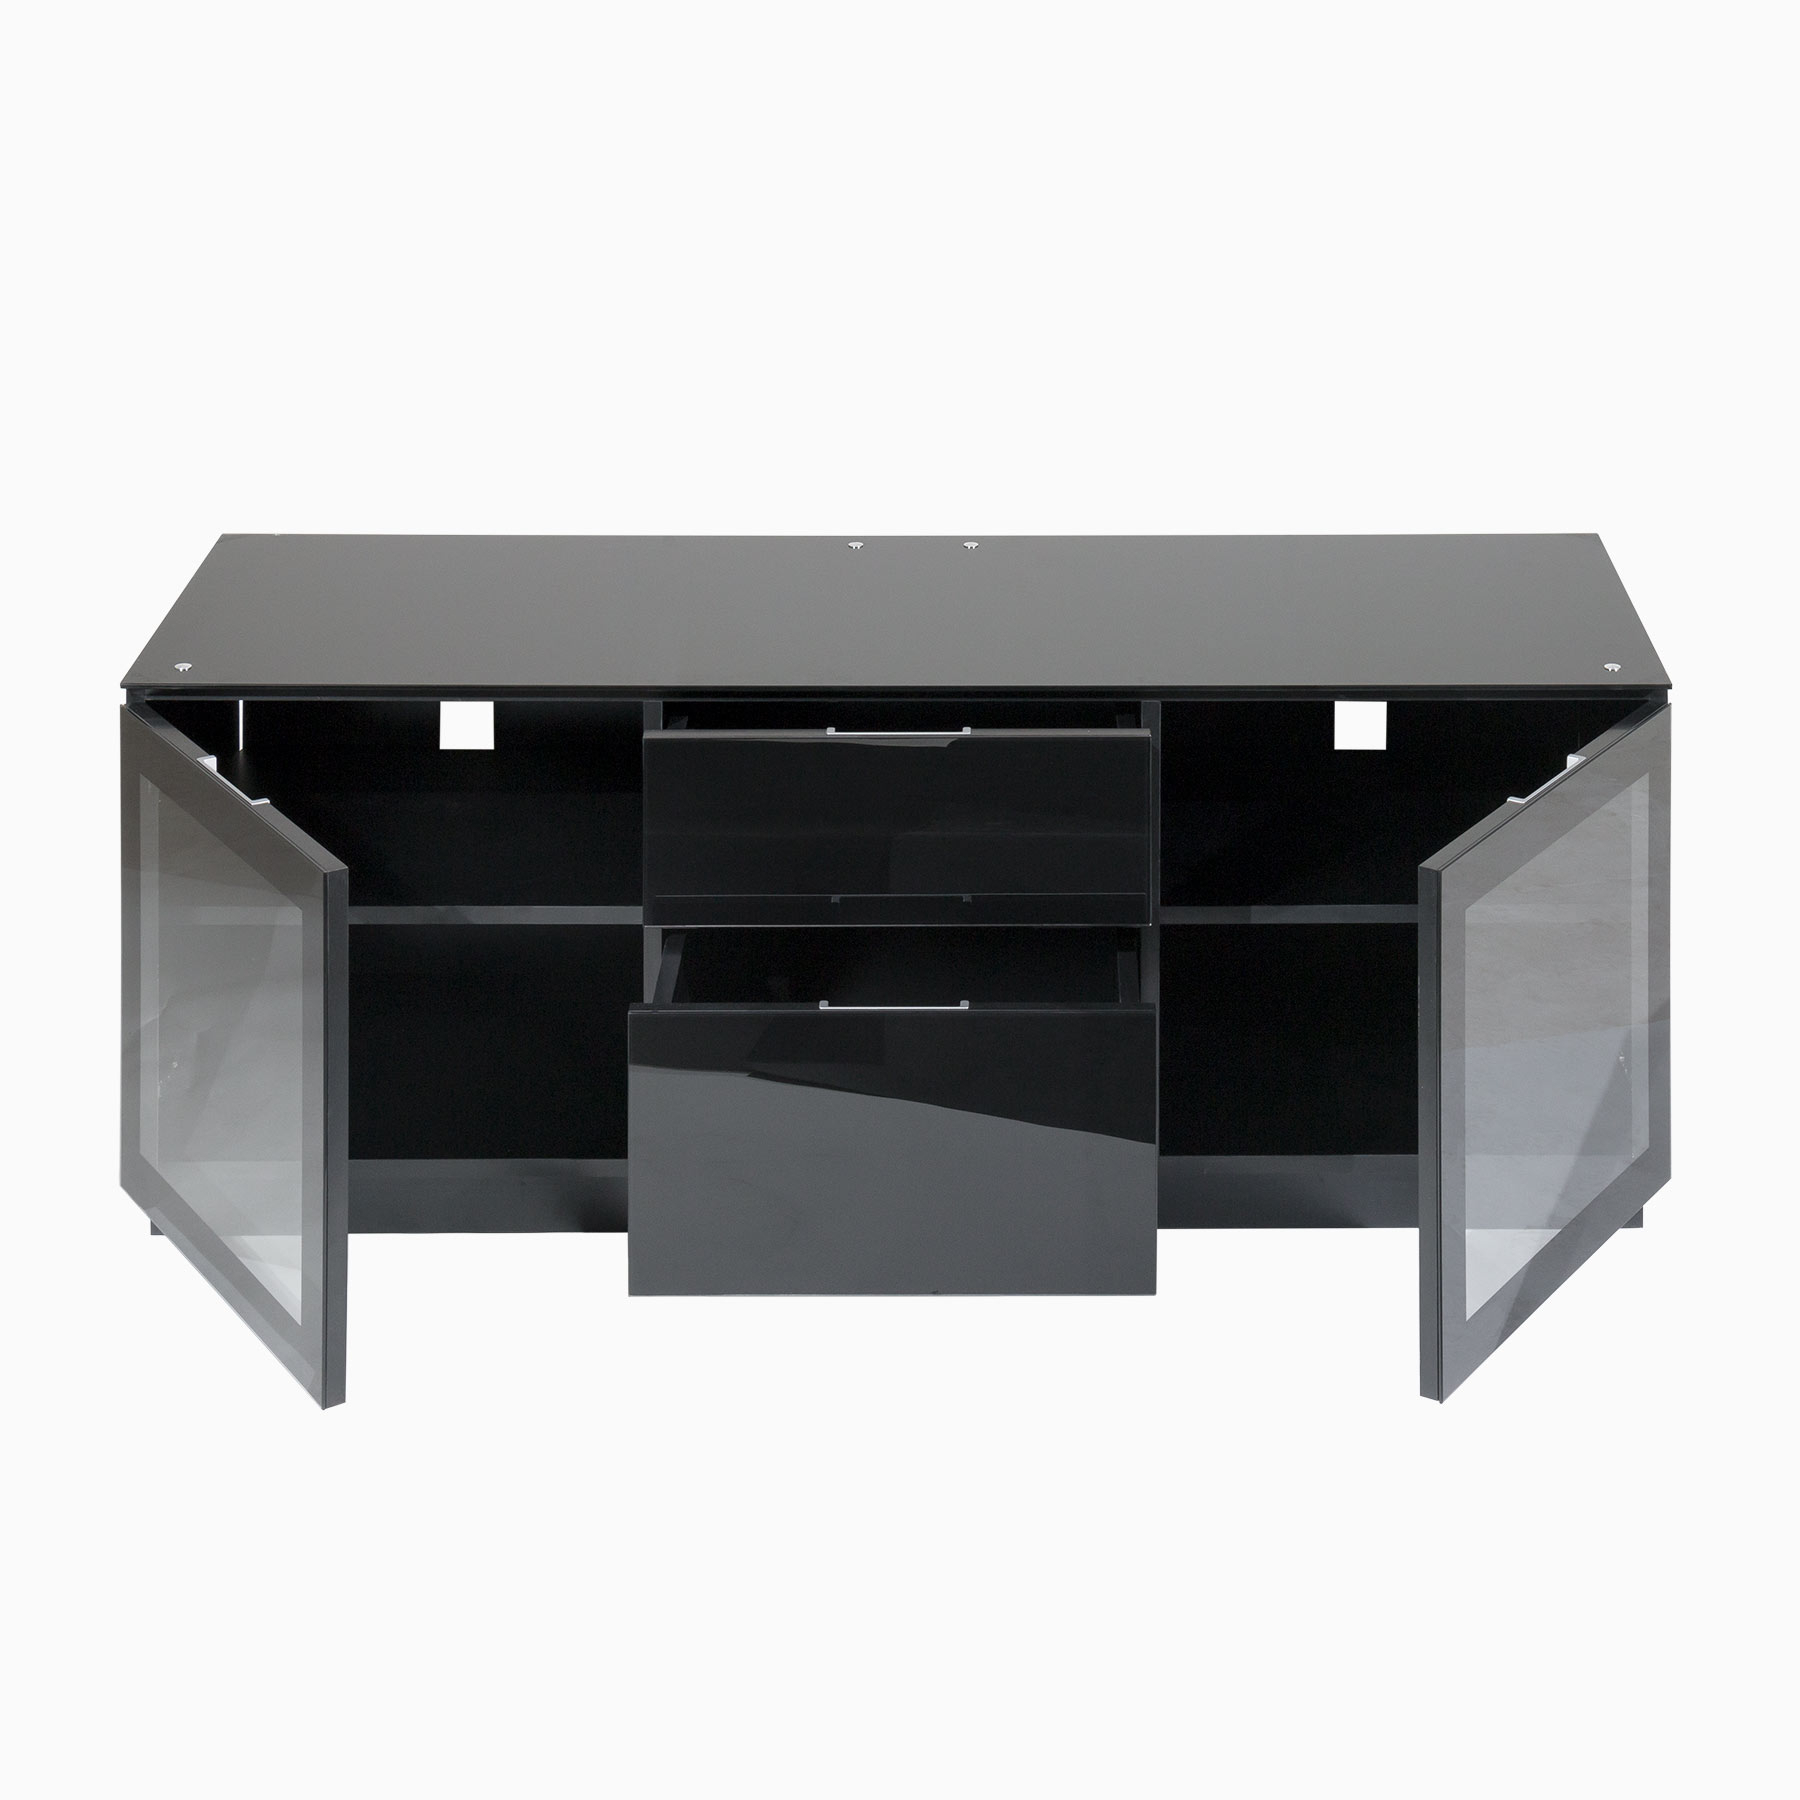 """Tv Cabinet With Doors And Drawers For Up To 65"""" Screens Within Current Black Tv Cabinets With Drawers (View 9 of 20)"""